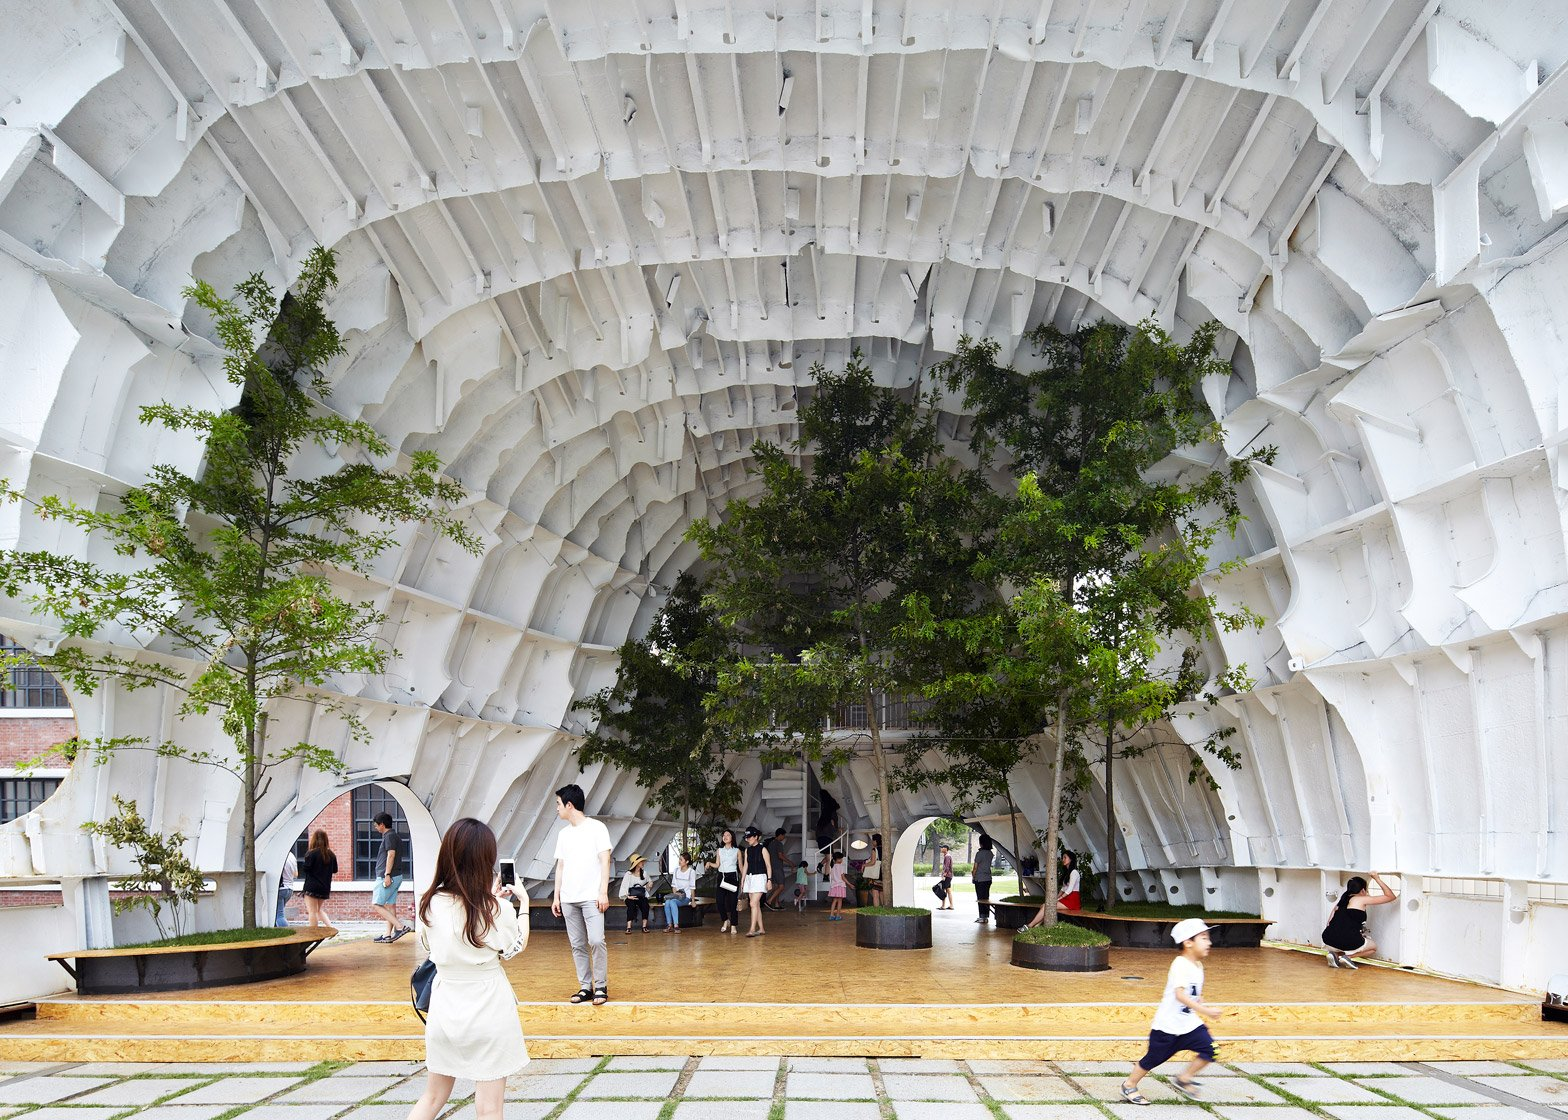 templ-shinslab-temporary-temple-seoul-south-korea-museum-courtyard-recycled-cargo-ship-parts_dezeen_1568_14